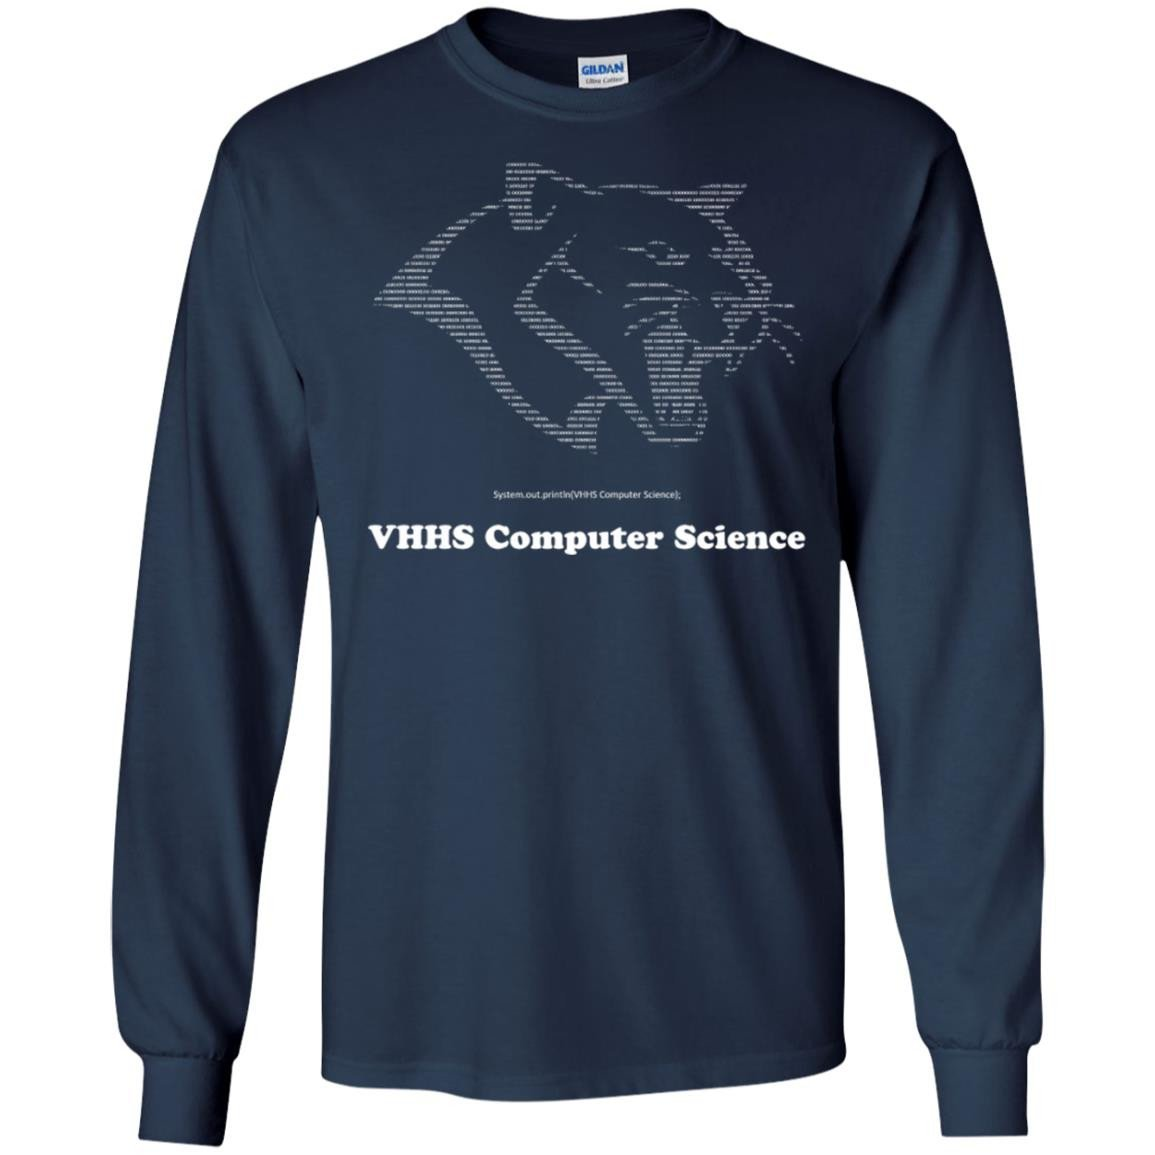 Vhhs Computer Science Shirts T Shirt Long Sleeve 240 Alottee